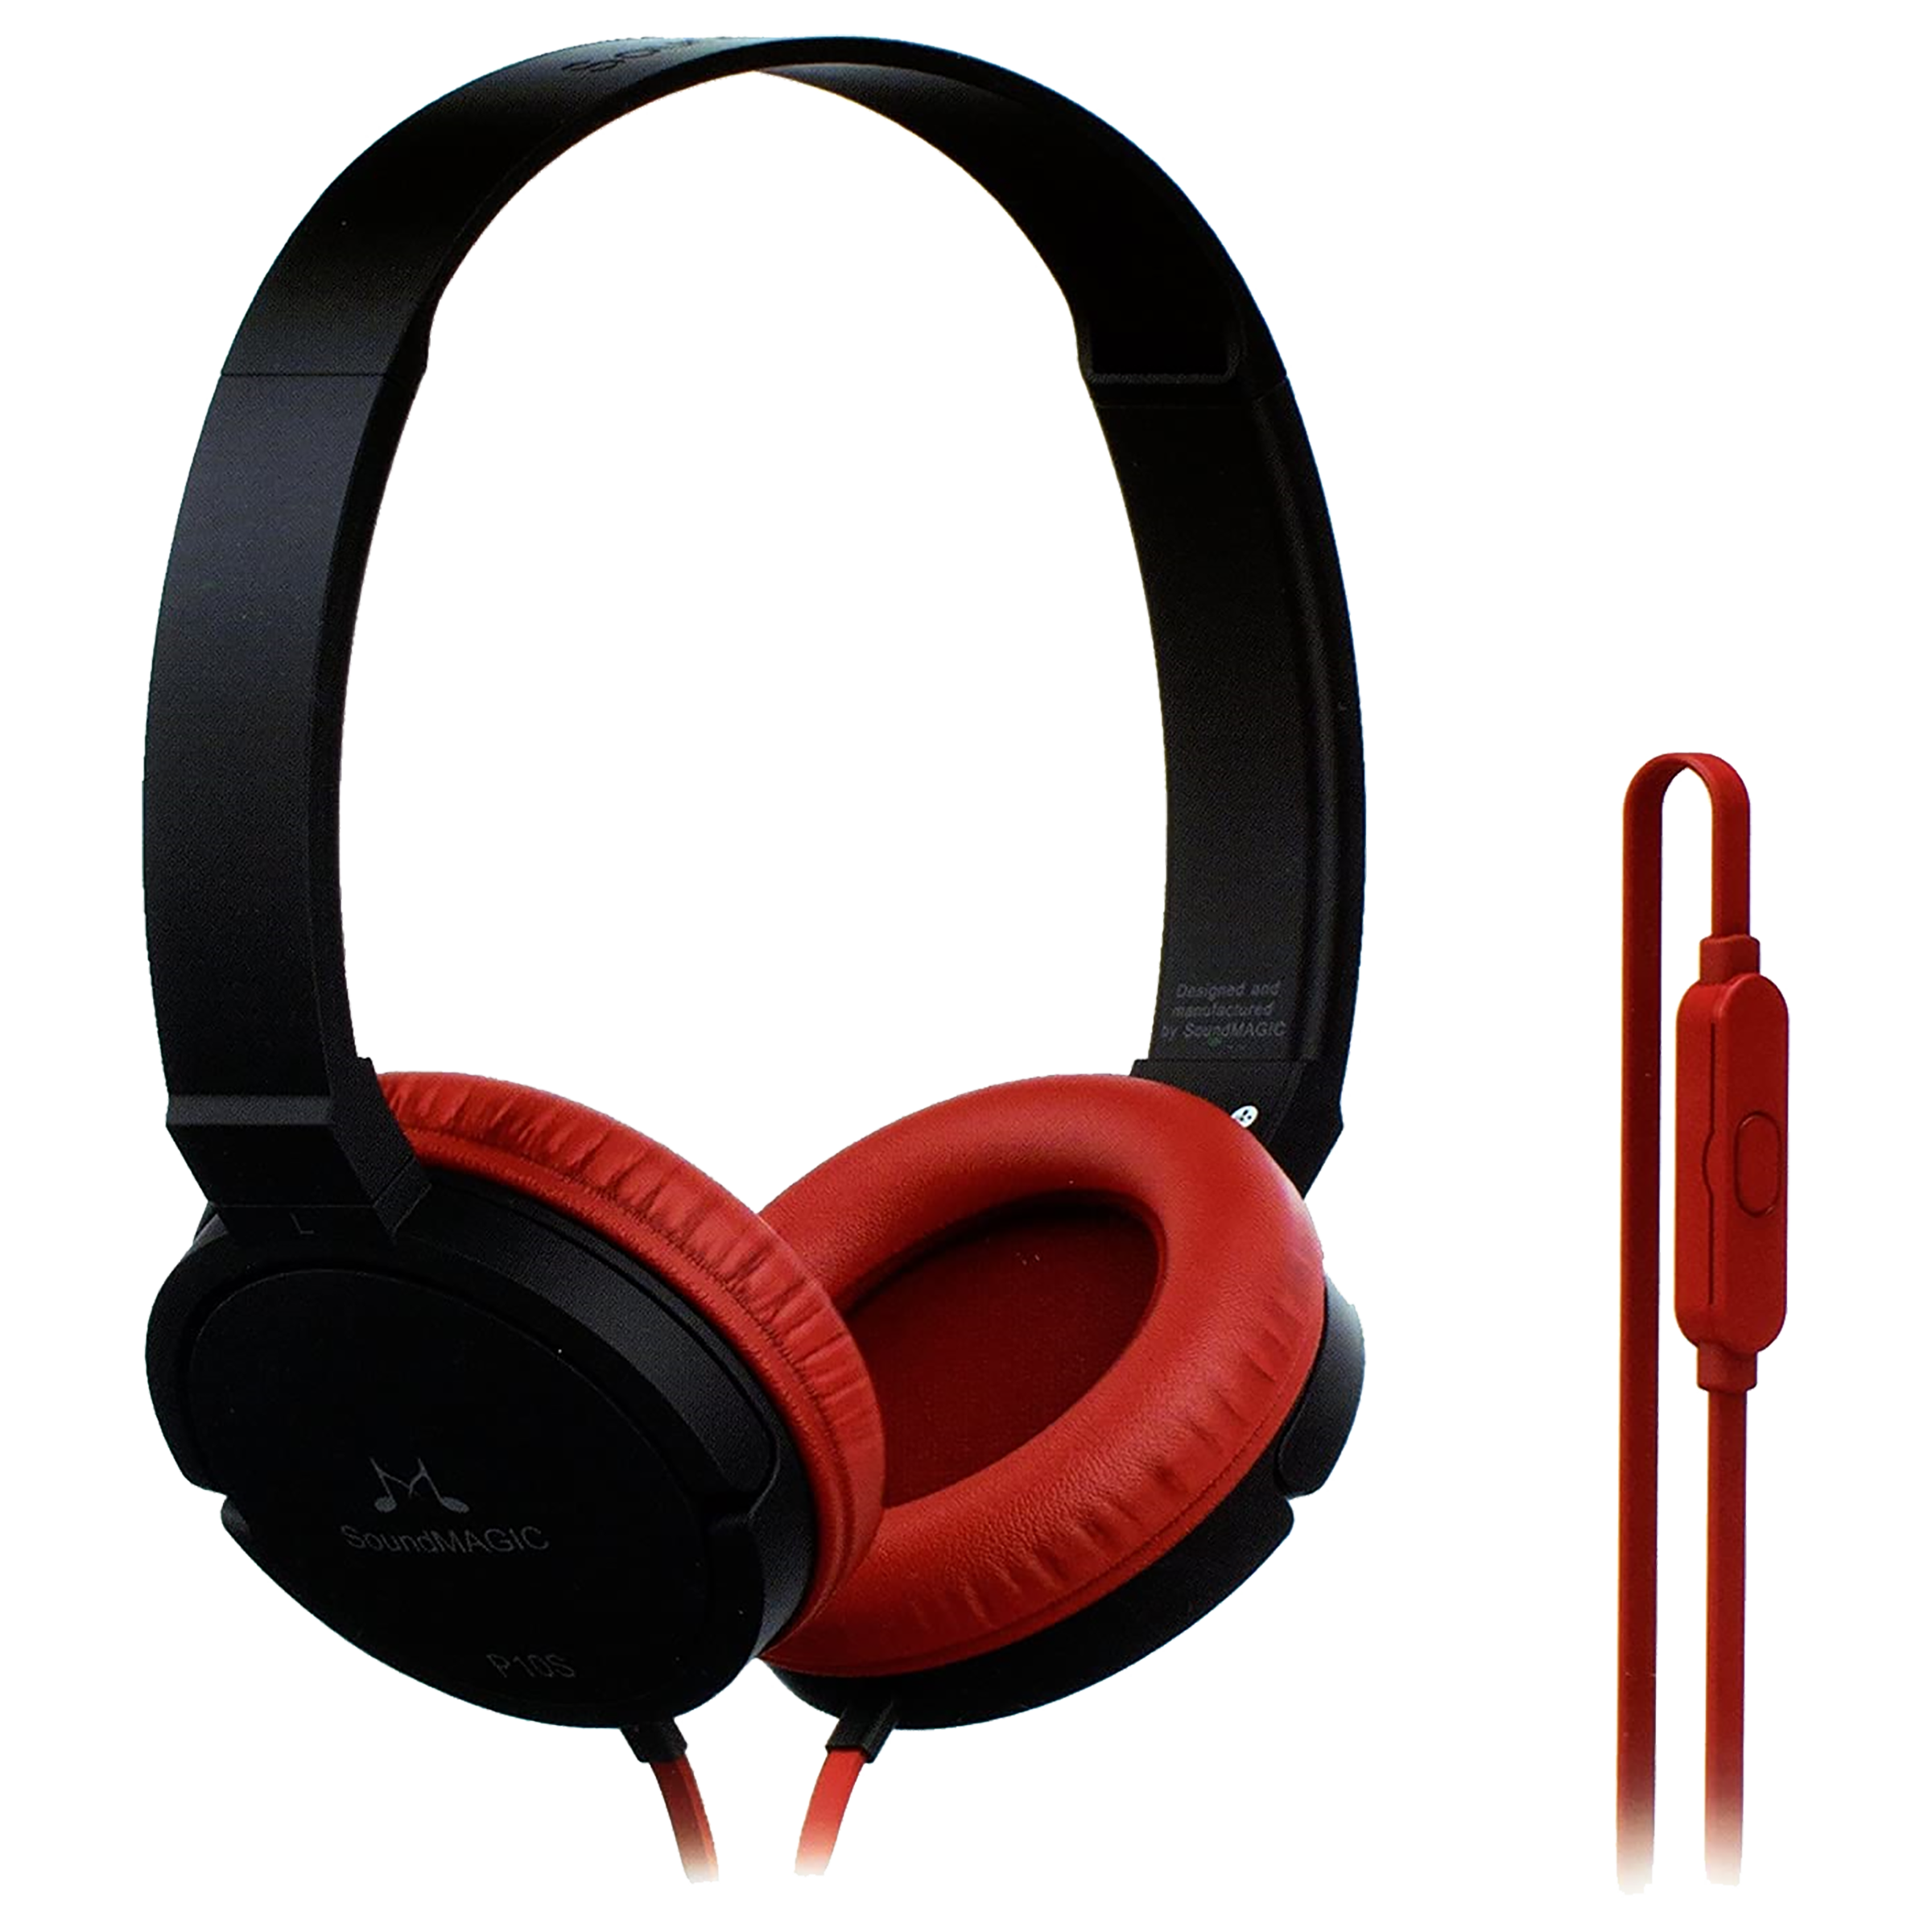 SoundMAGIC Over-Ear Noise Isolation Wired Headphone with Mic (Tangle Resistant Cord, P10S, Red)_1